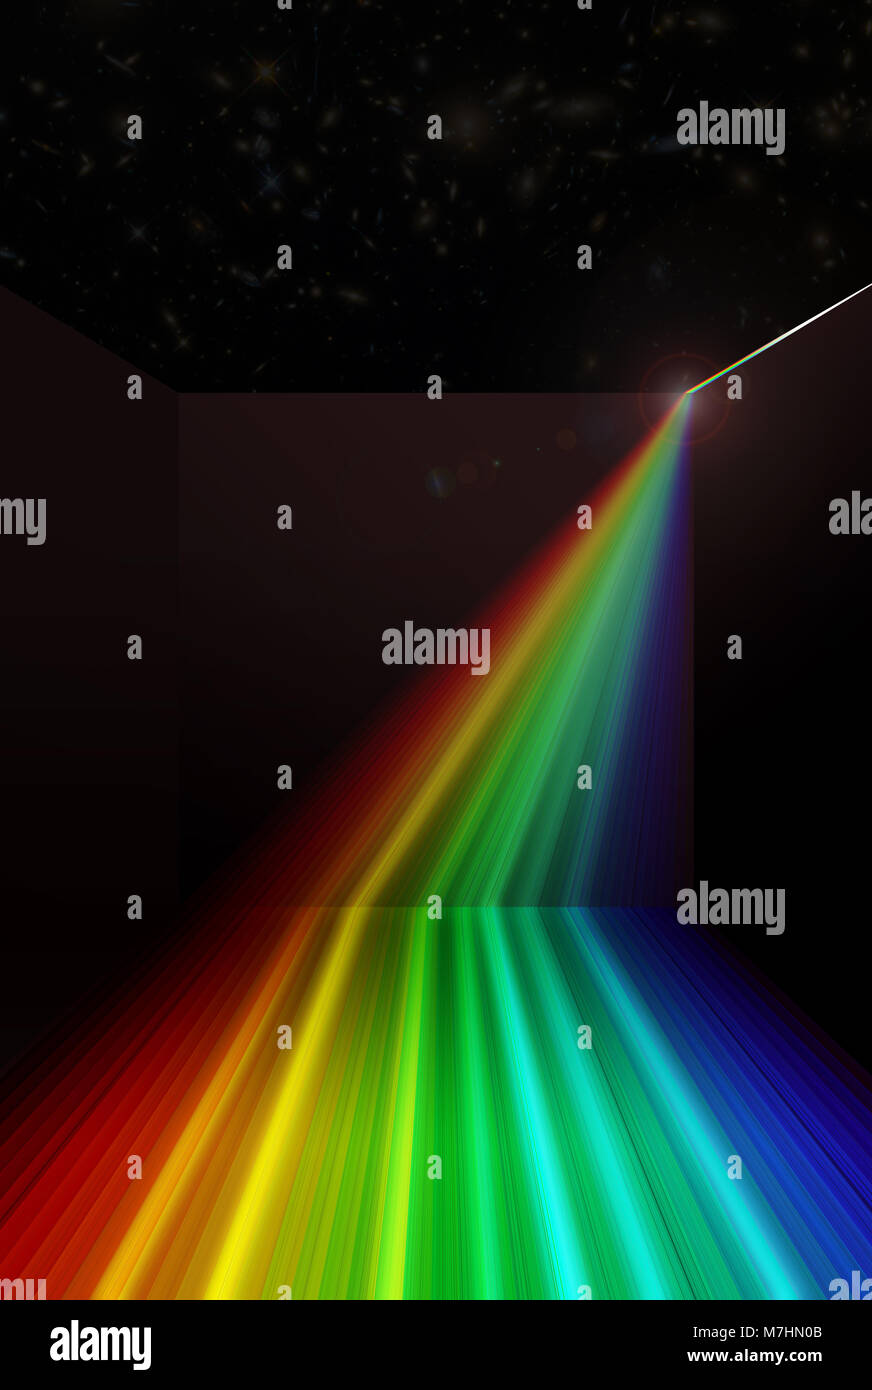 Spectral output from split sun bouncing about on dimensions of an enclosure considering the concept of time, beginning - Stock Image